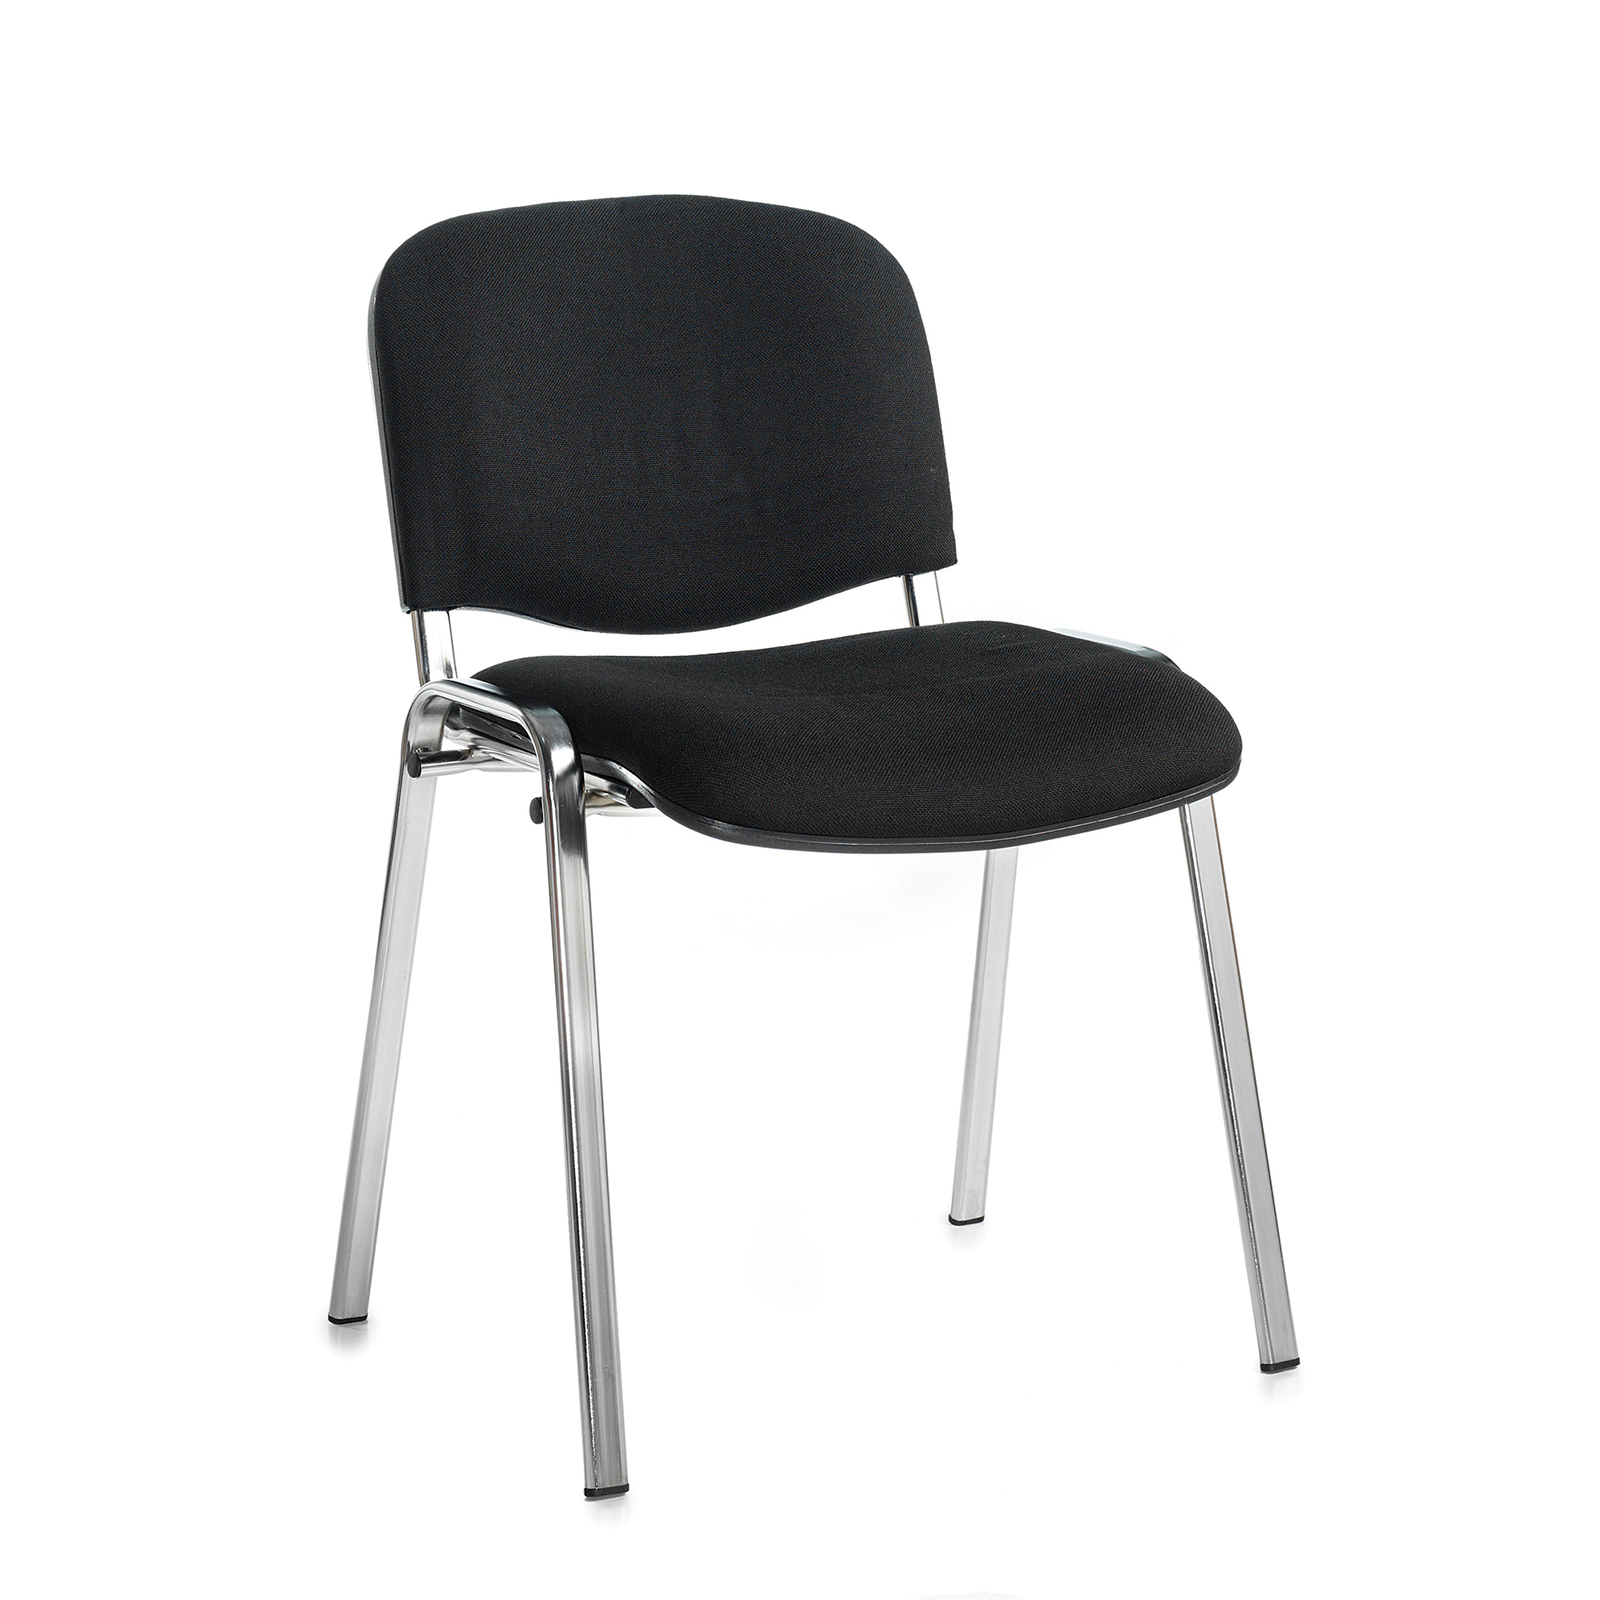 Boardroom / Meeting Taurus meeting room stackable chair with chrome frame and no arms - black